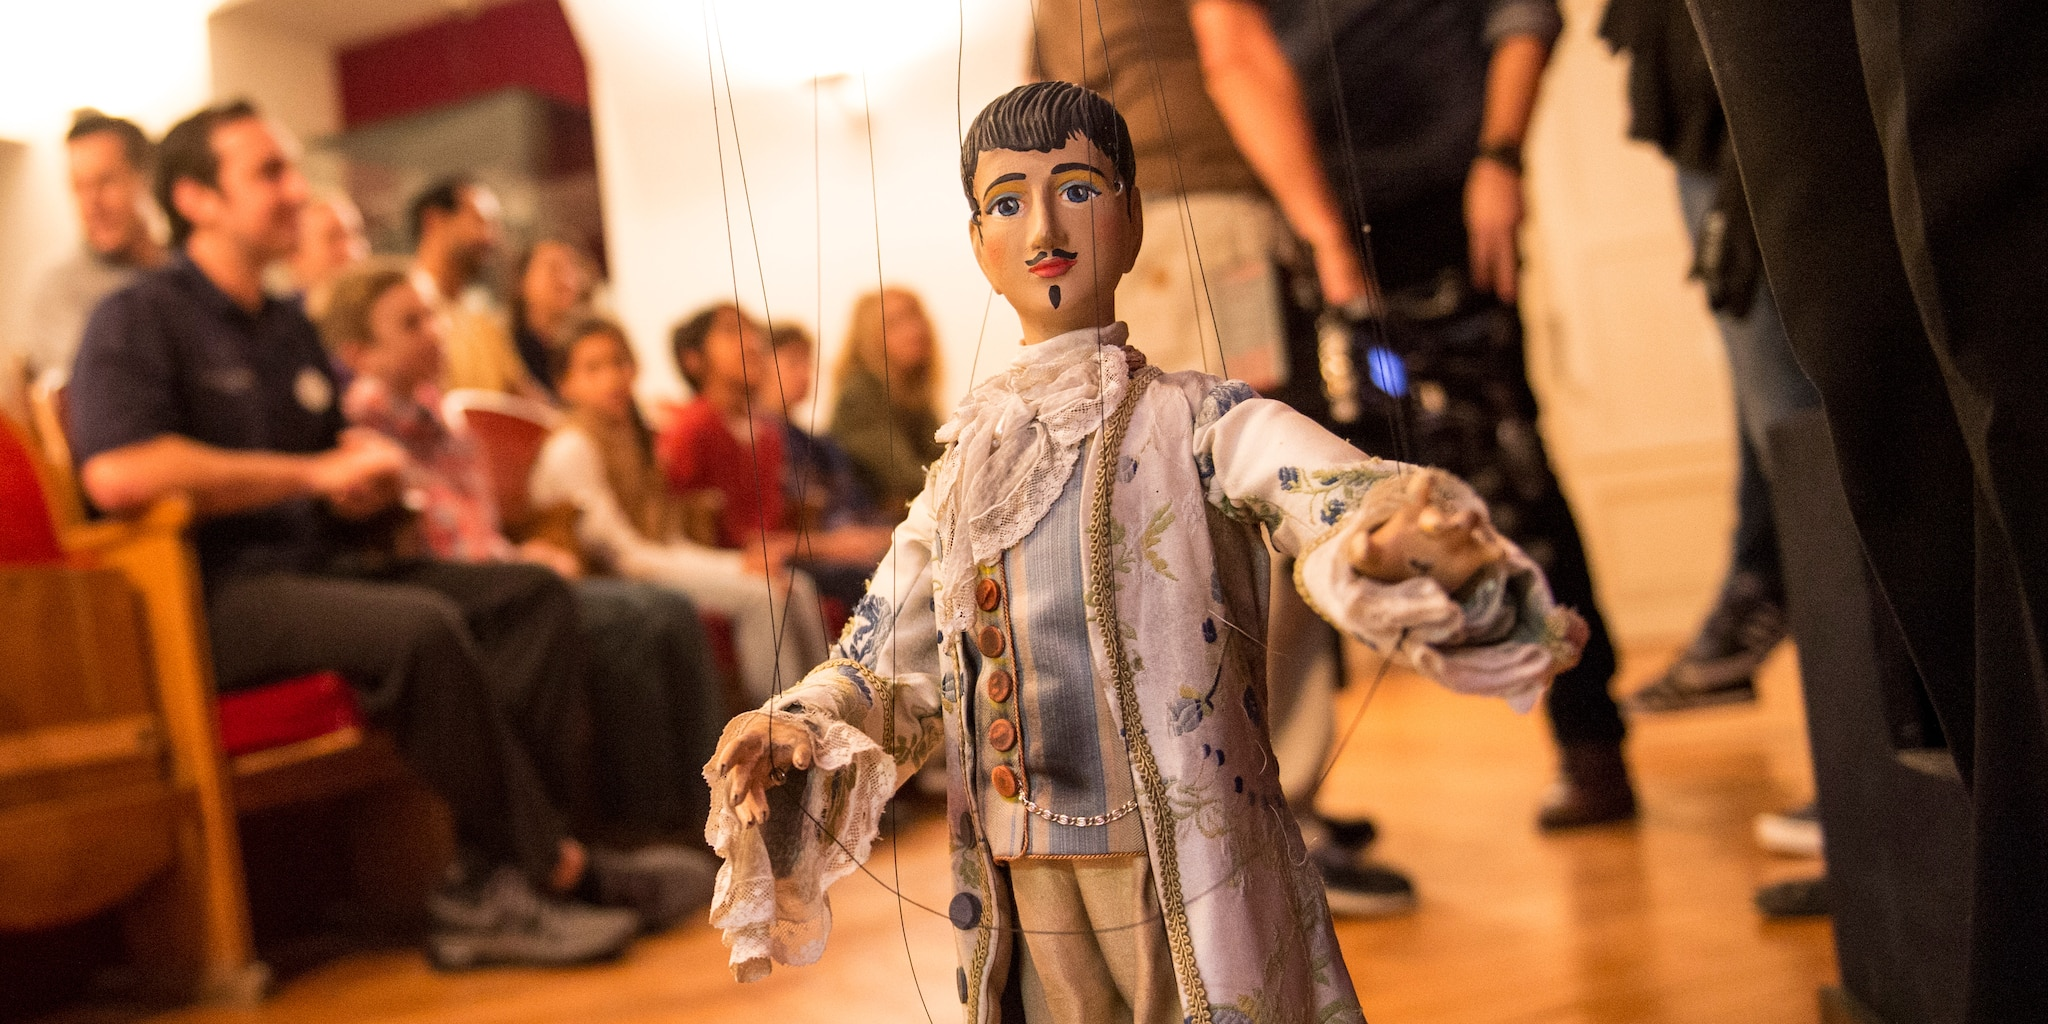 A handmade marioette with strings wears renaissance attire and sports a painted moustache